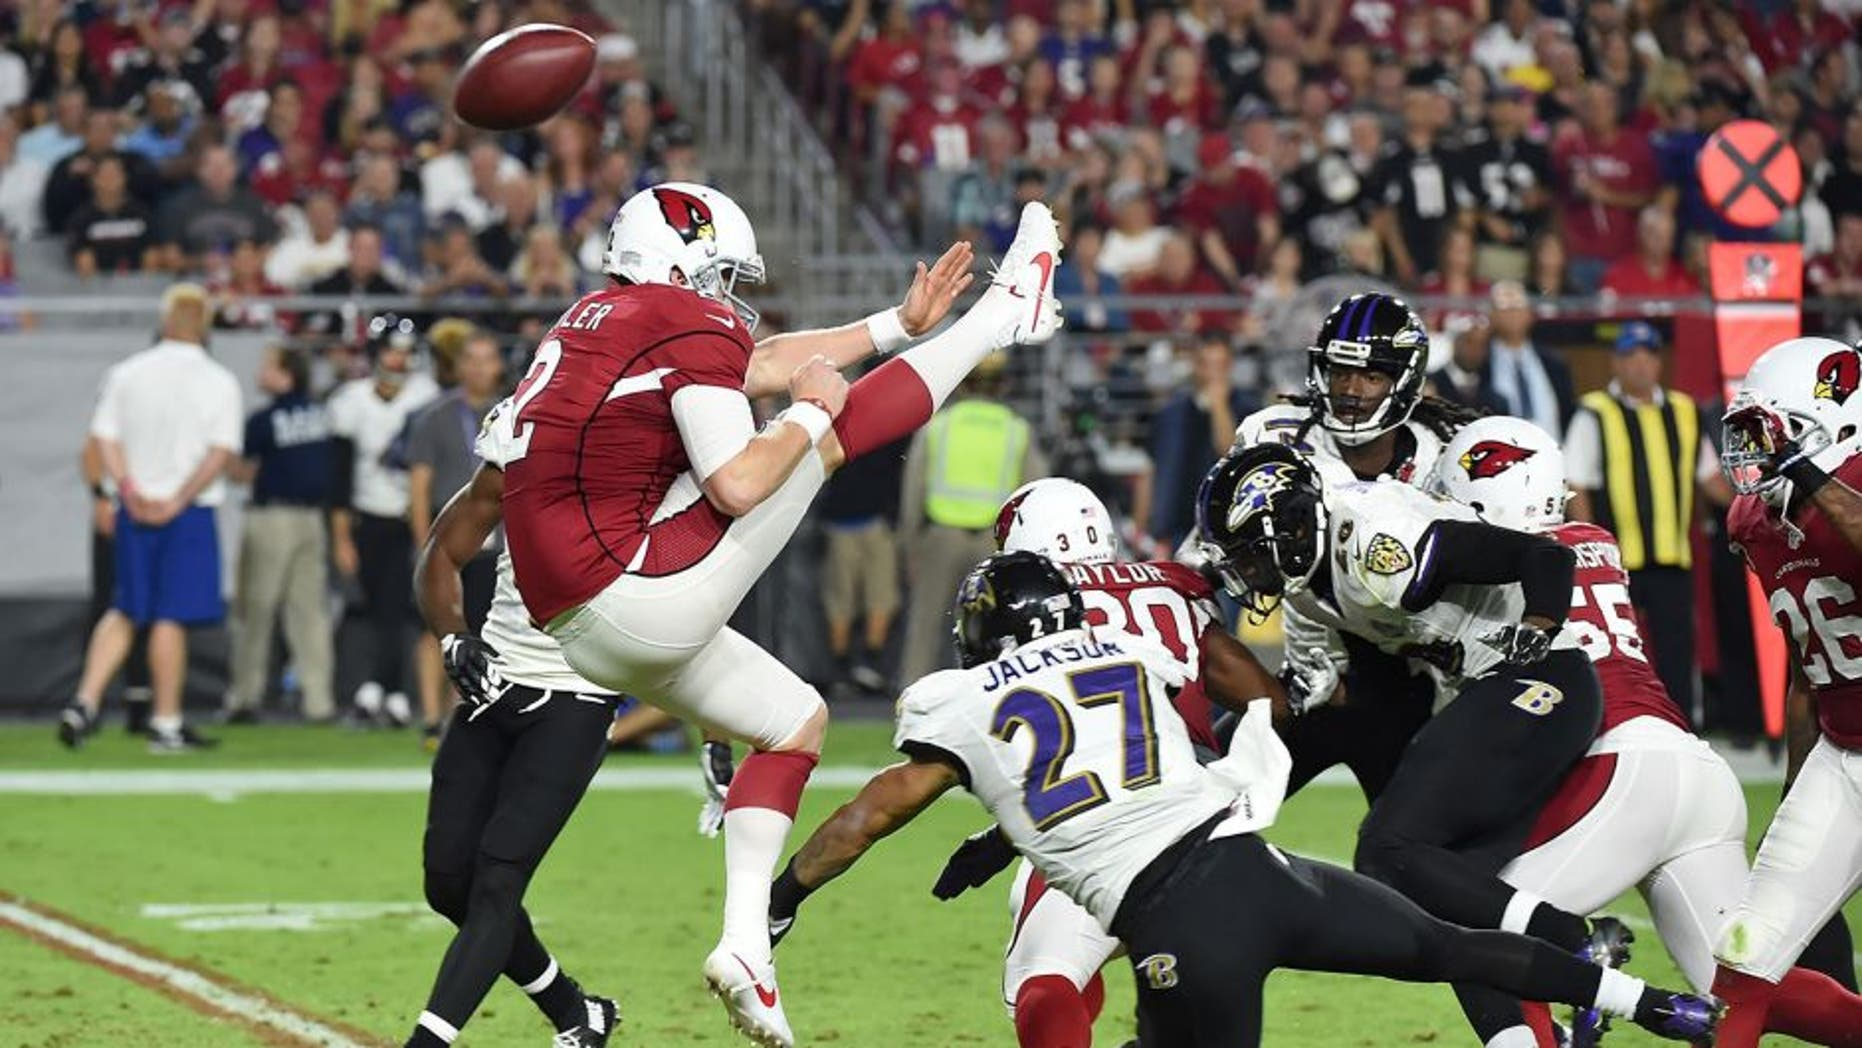 GLENDALE, AZ - OCTOBER 26: Drew Butler's #2 of the Arizona Cardinals punt is blocked by cornerback Asa Jackson #27 of the Baltimore Ravens in the fourth quarter of the NFL game at University of Phoenix Stadium on October 26, 2015 in Glendale, Arizona. (Photo by Norm Hall/Getty Images)